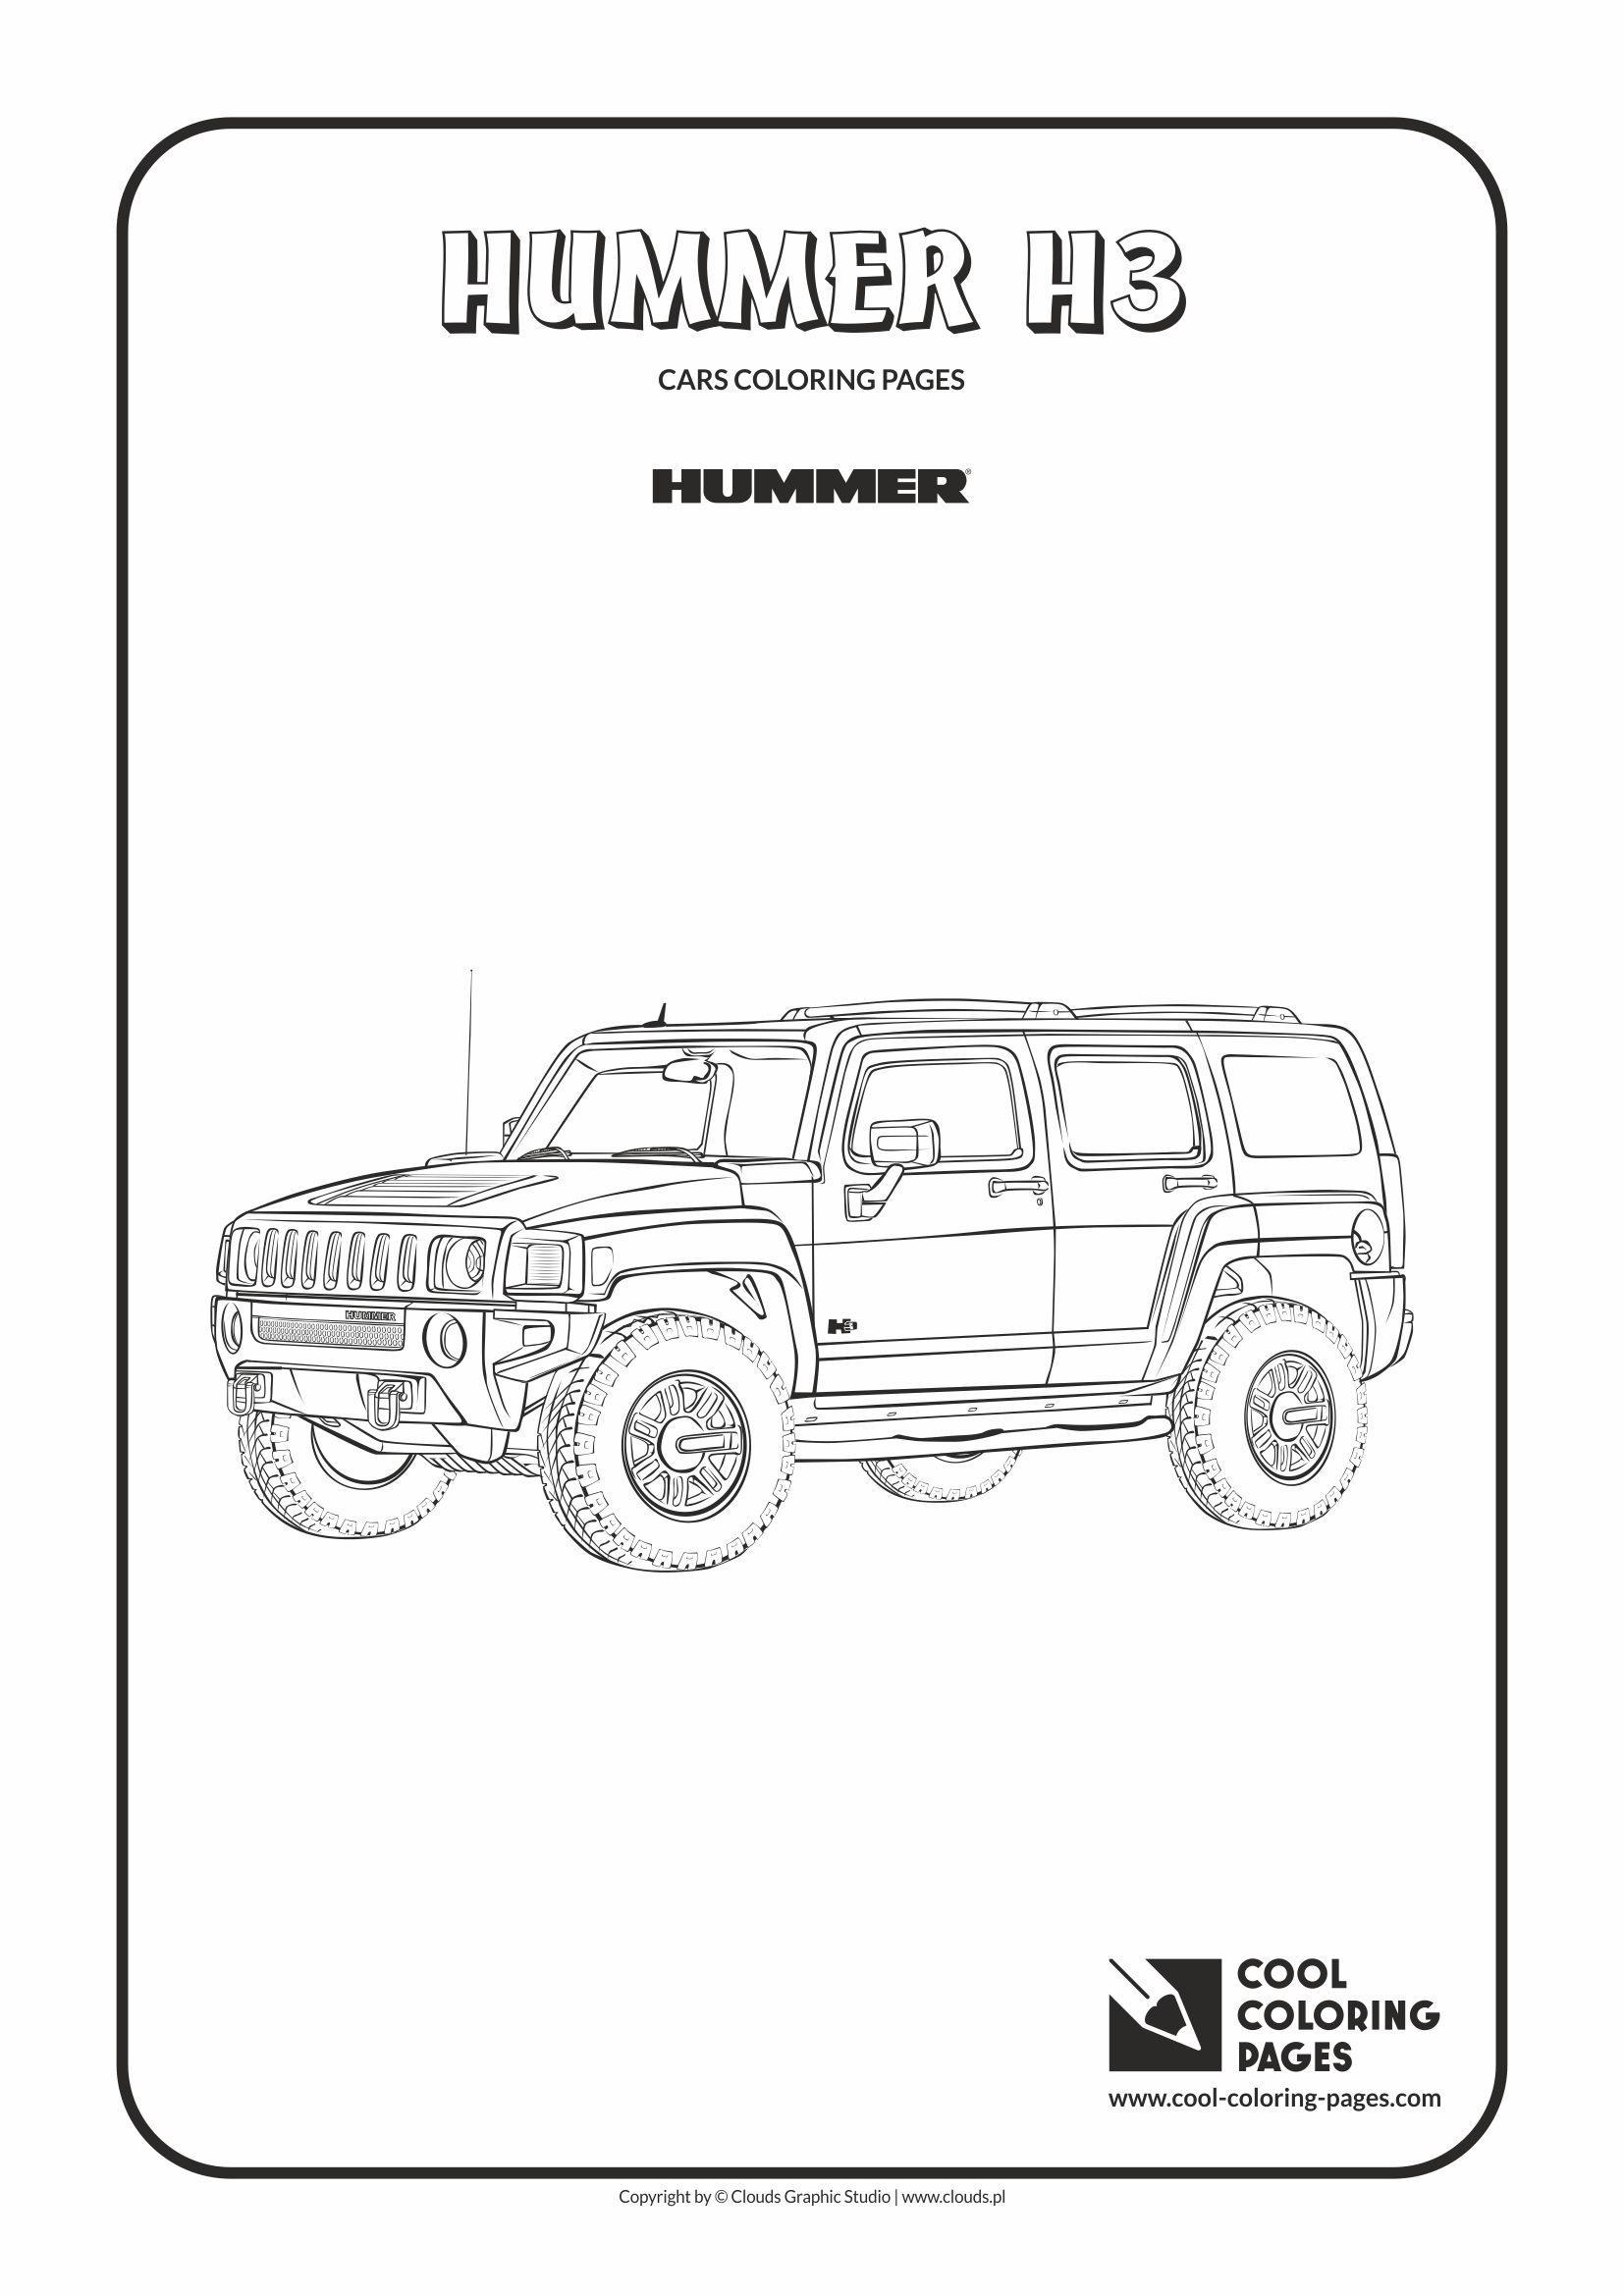 Cool Coloring Pages - Vehicles / Hummer H3 / Coloring page with Hummer H3